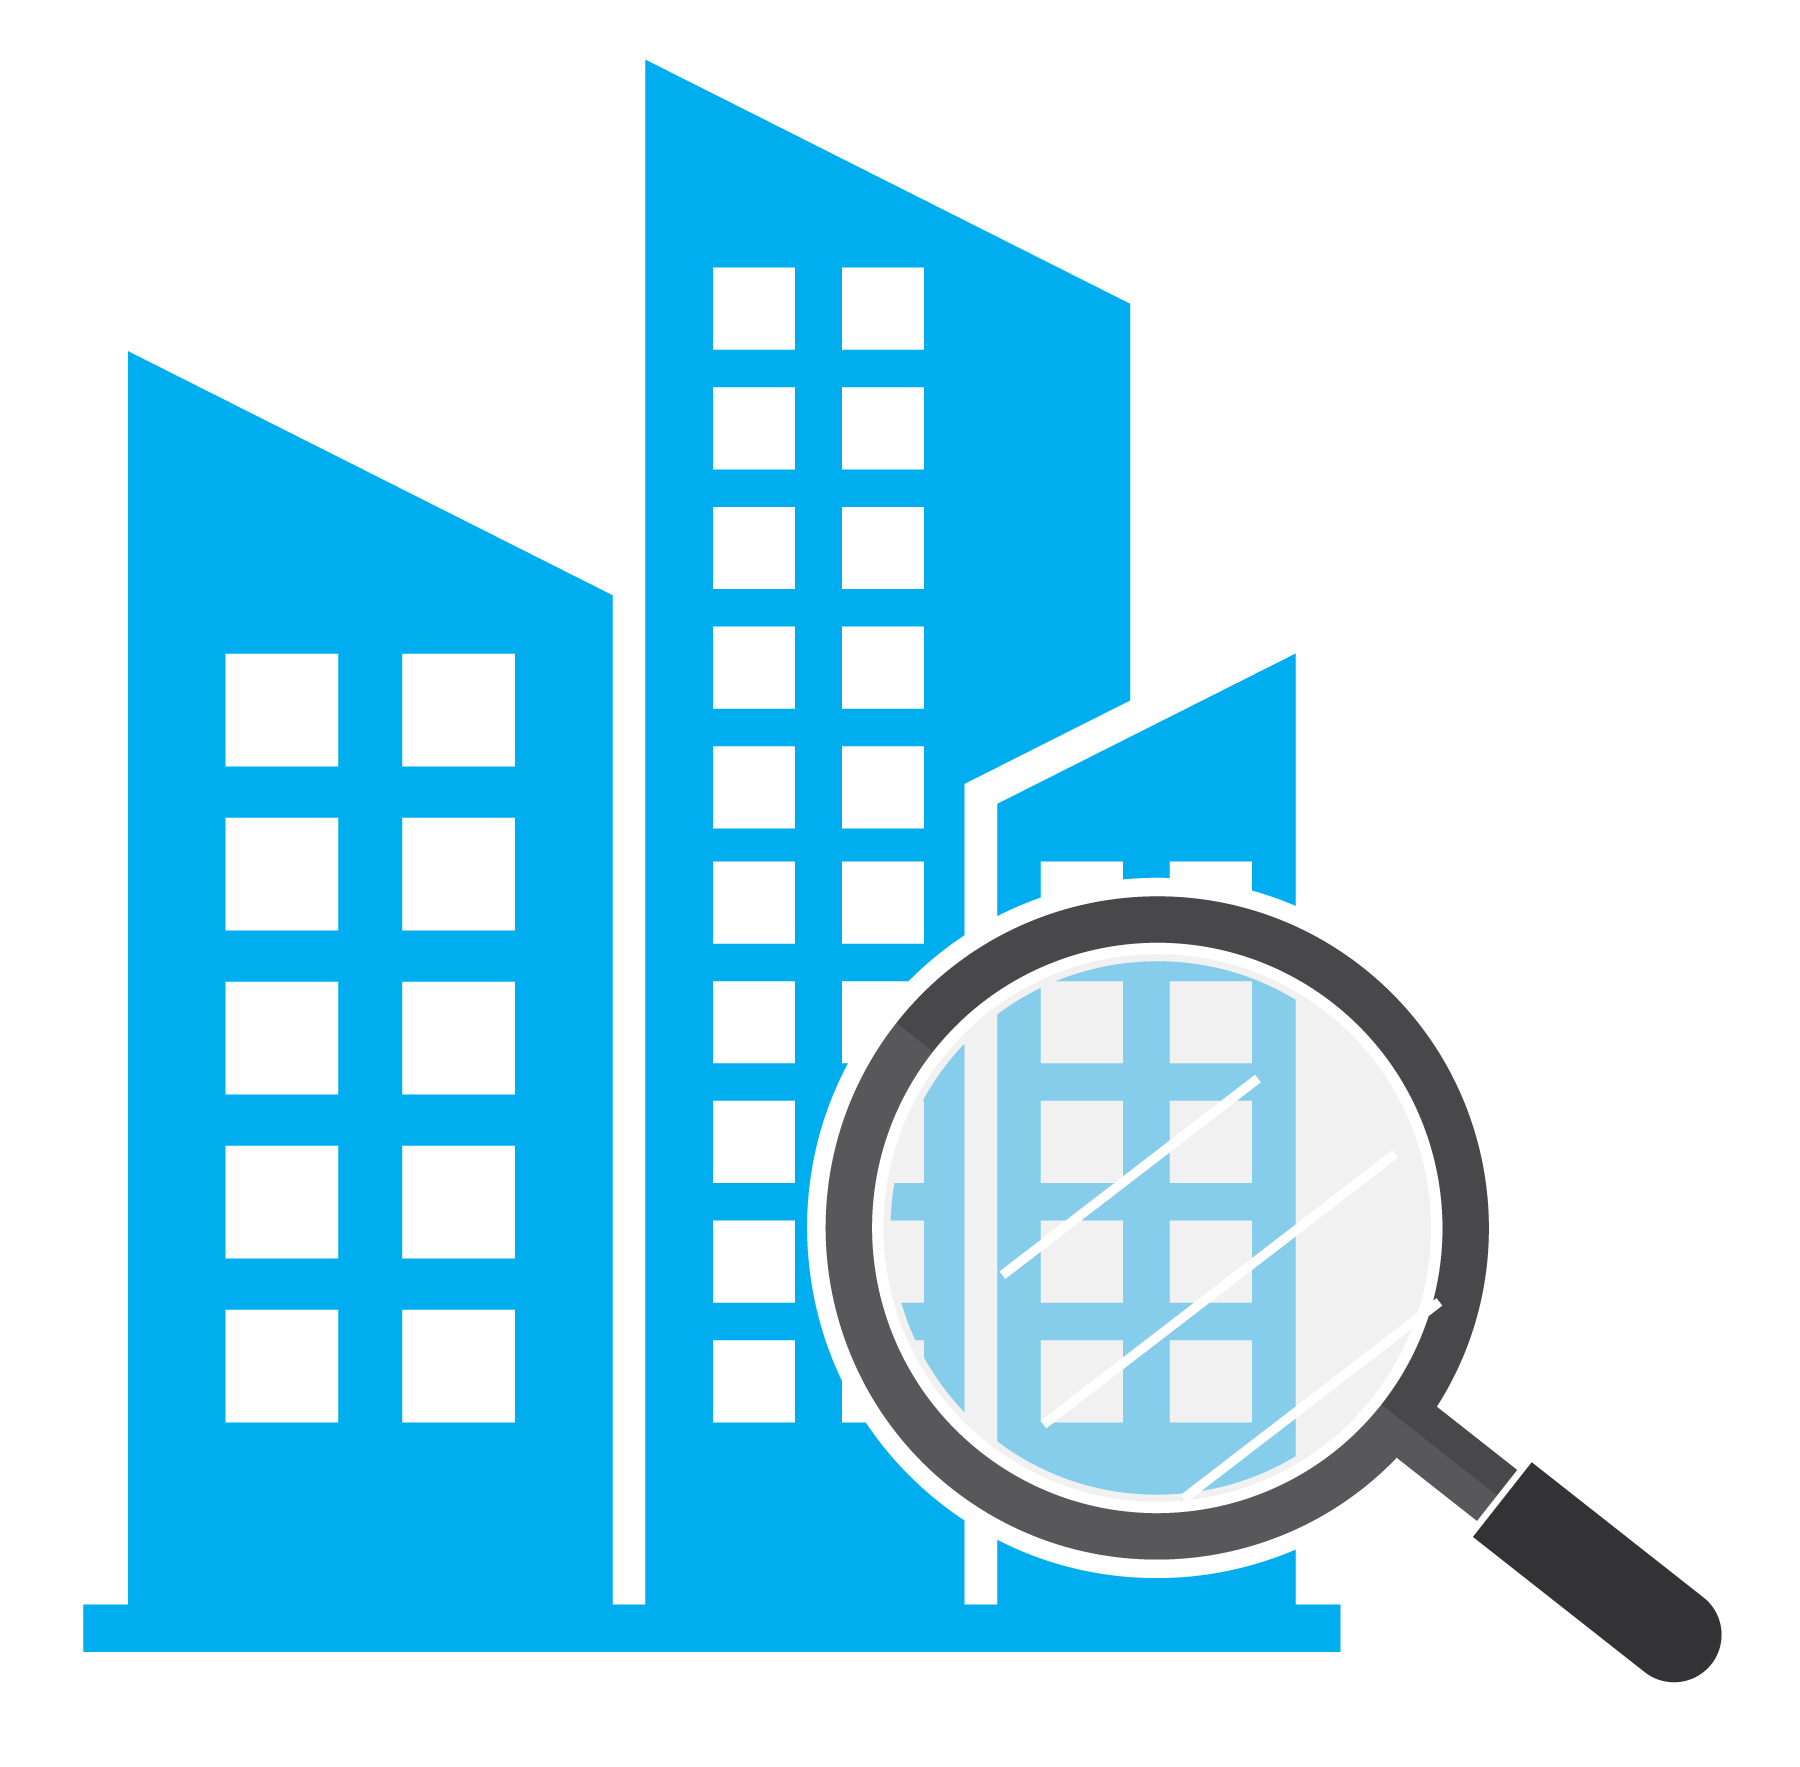 building icon with search magnifying glass